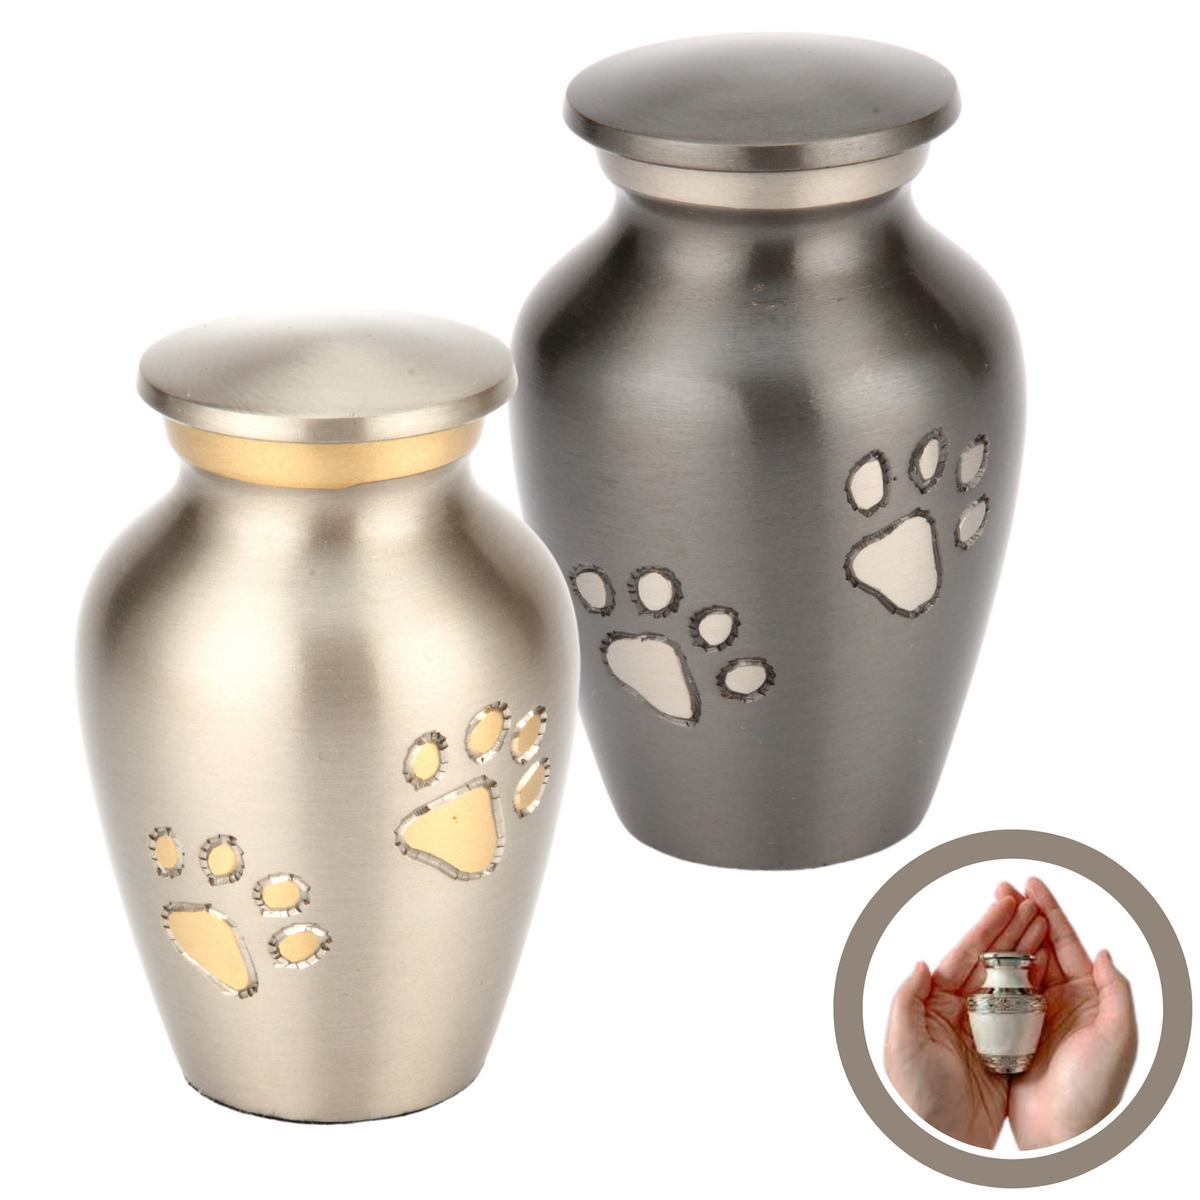 Matlock Cremation Ashes Keepsake Urns - Urns UK